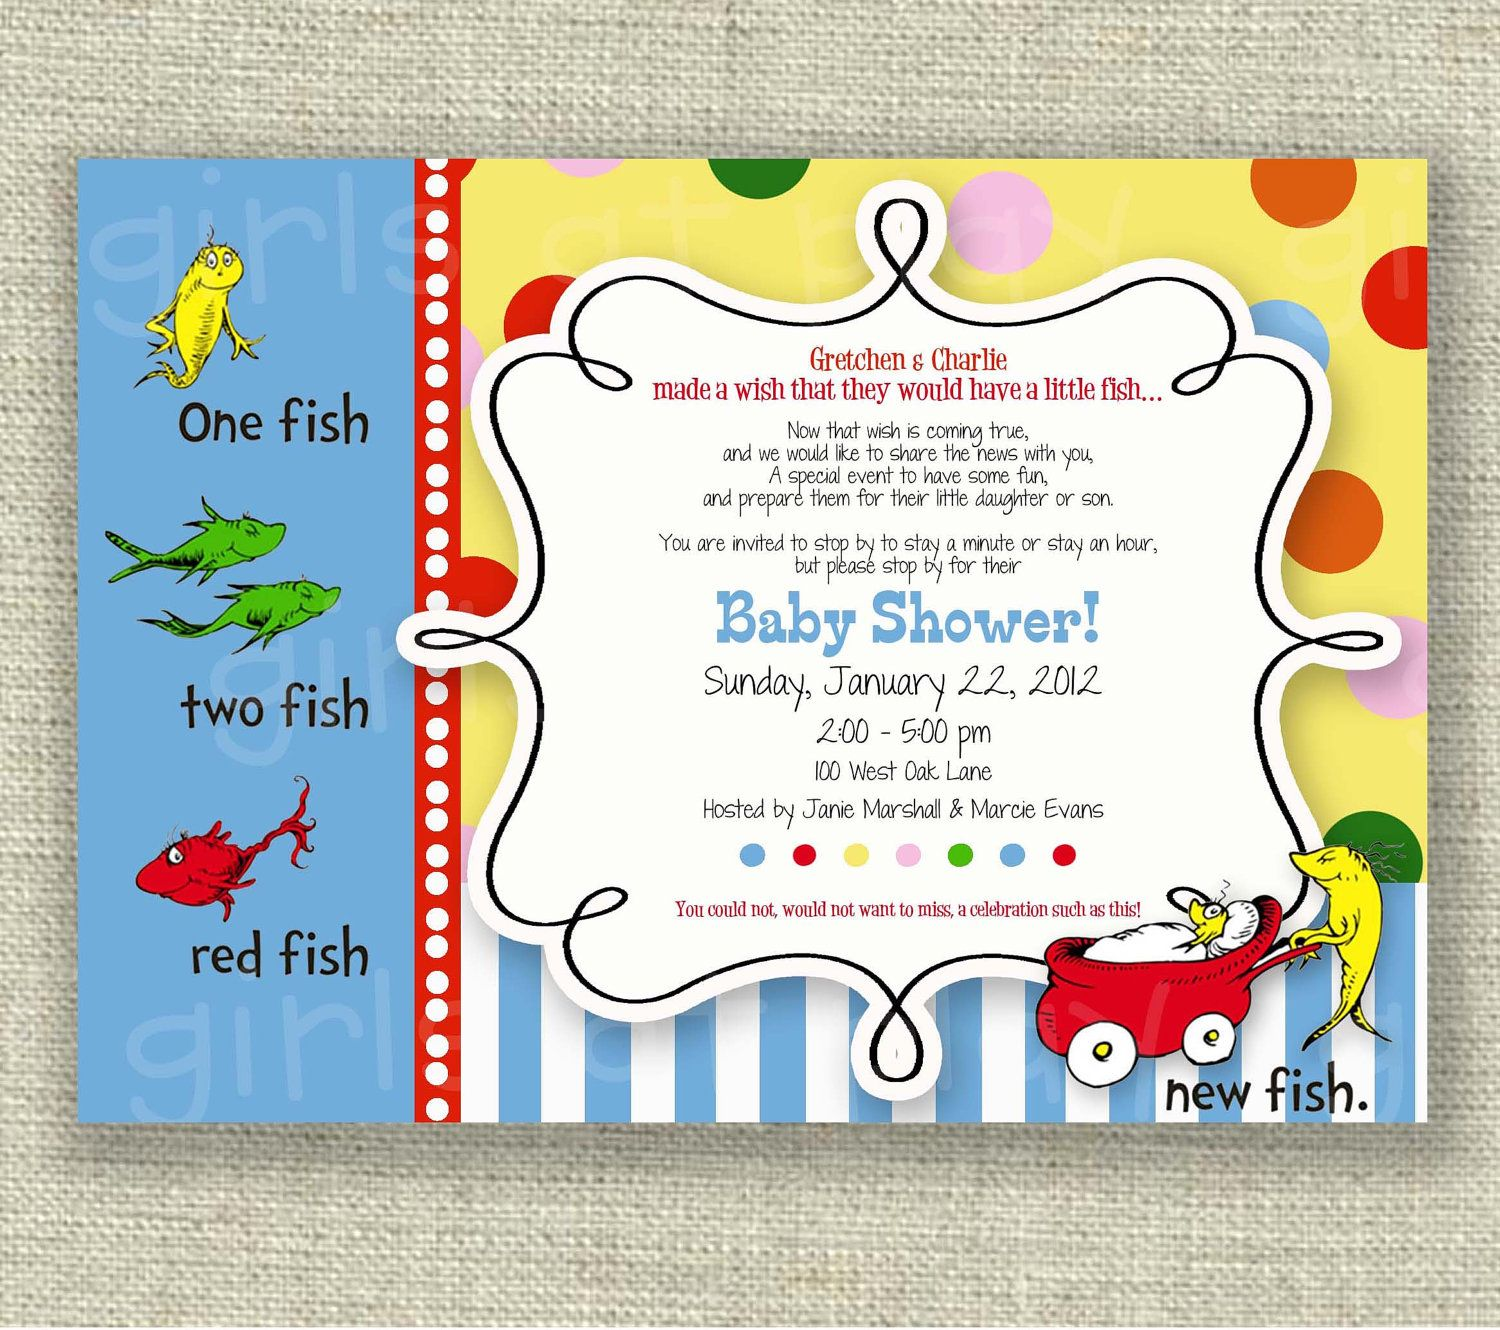 Dr Seuss Baby Shower Invitation One Fish Two Fish Boy Or Girl Printable    By Girlsatplay Girls At Play